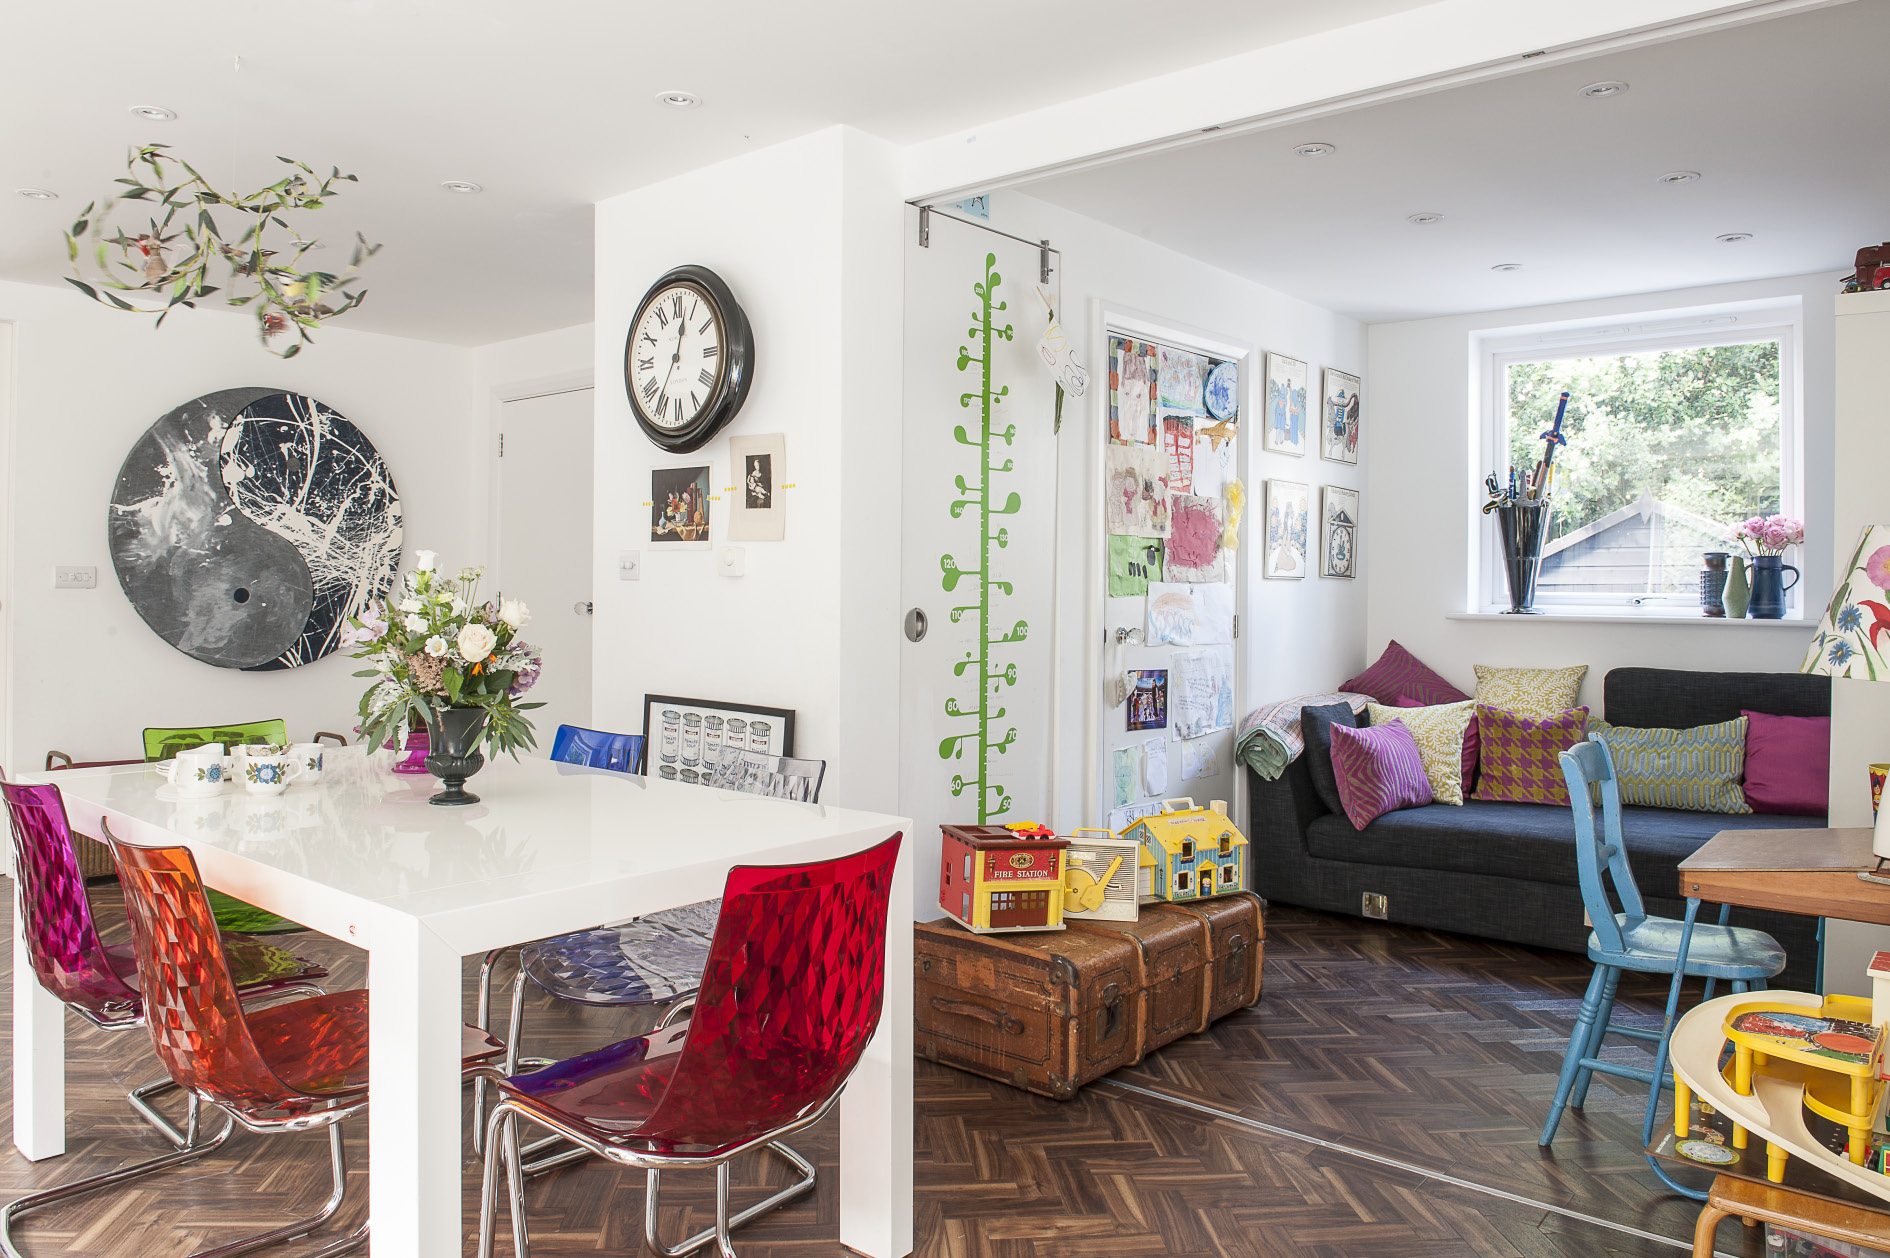 Kitsch & Chic Family Home – Priceless Magazines